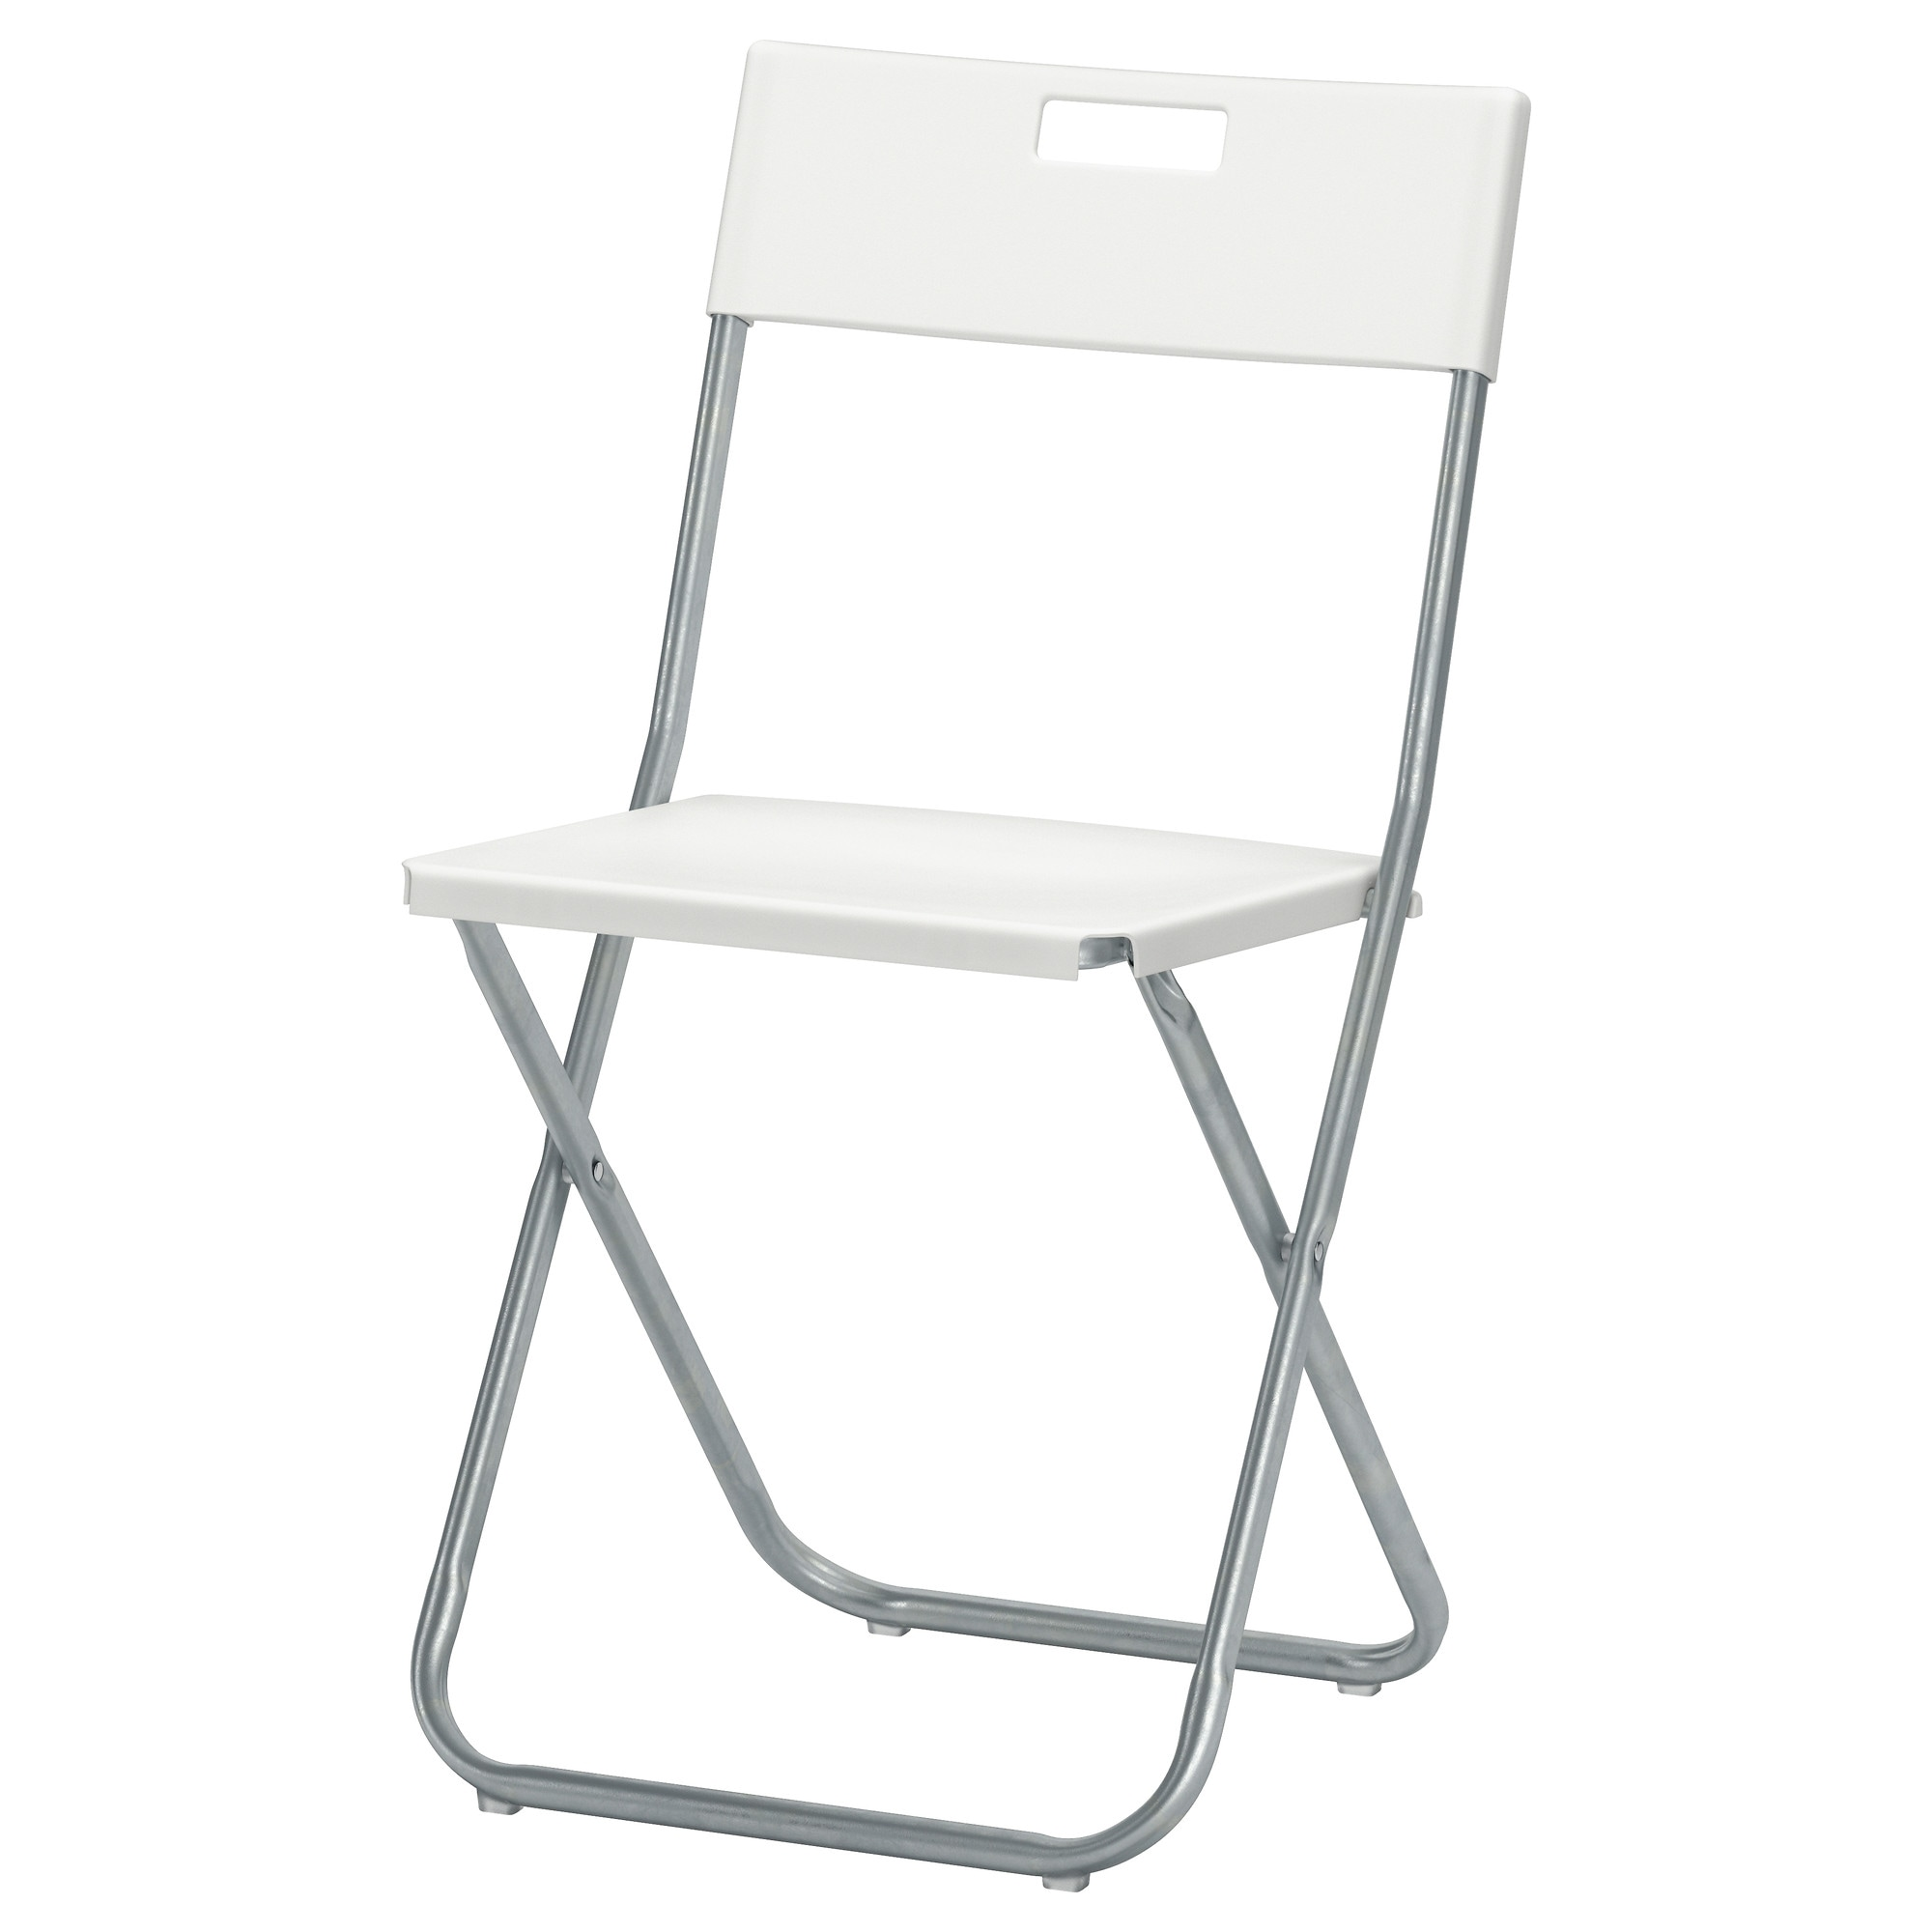 Folding chairs Dining chairs IKEA